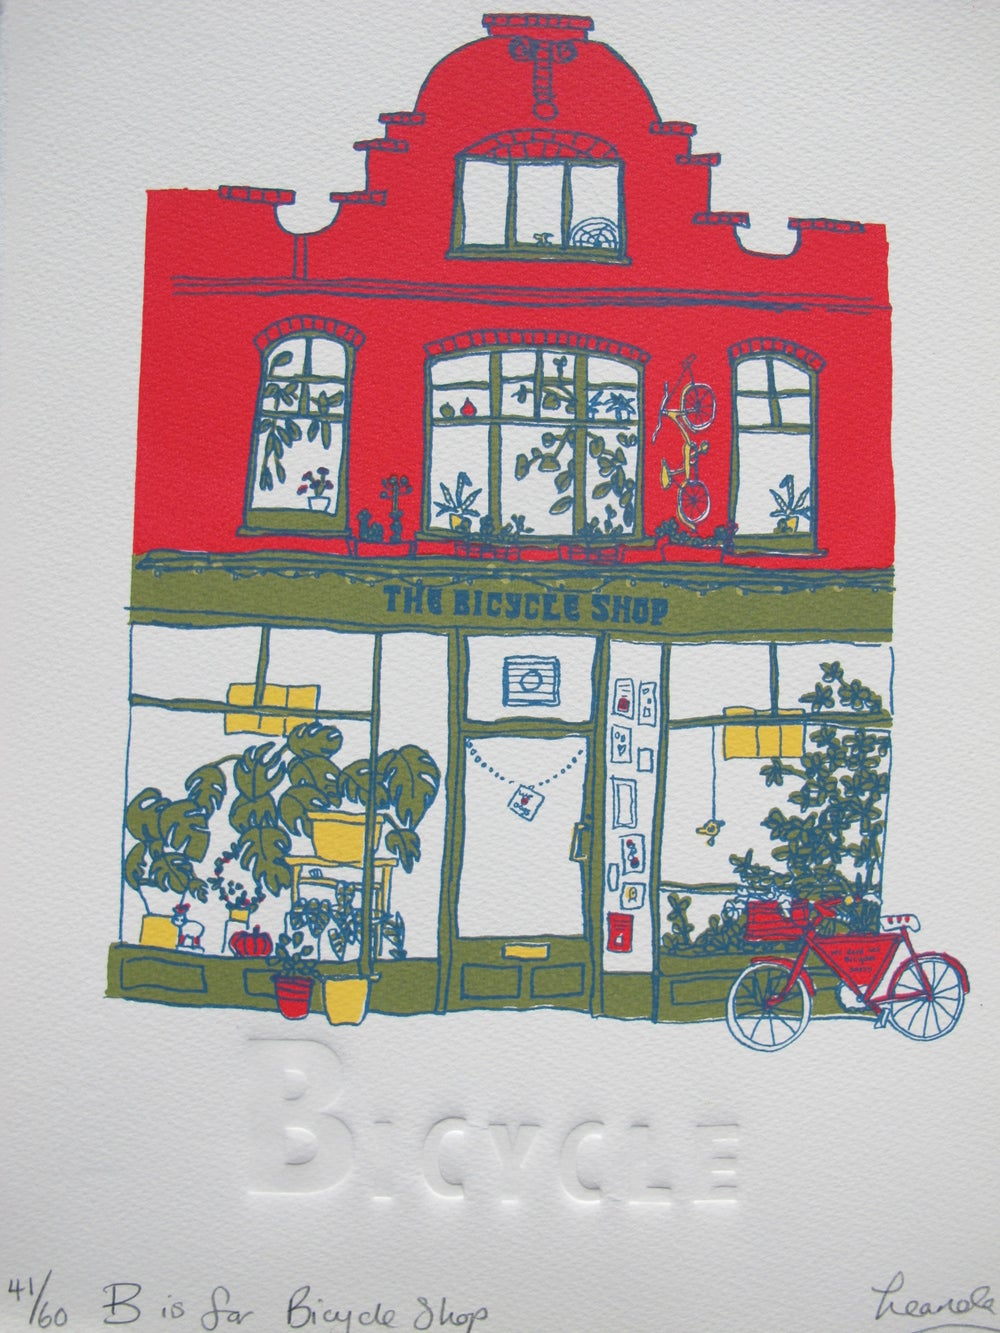 Image of B is for Bicycle Shop